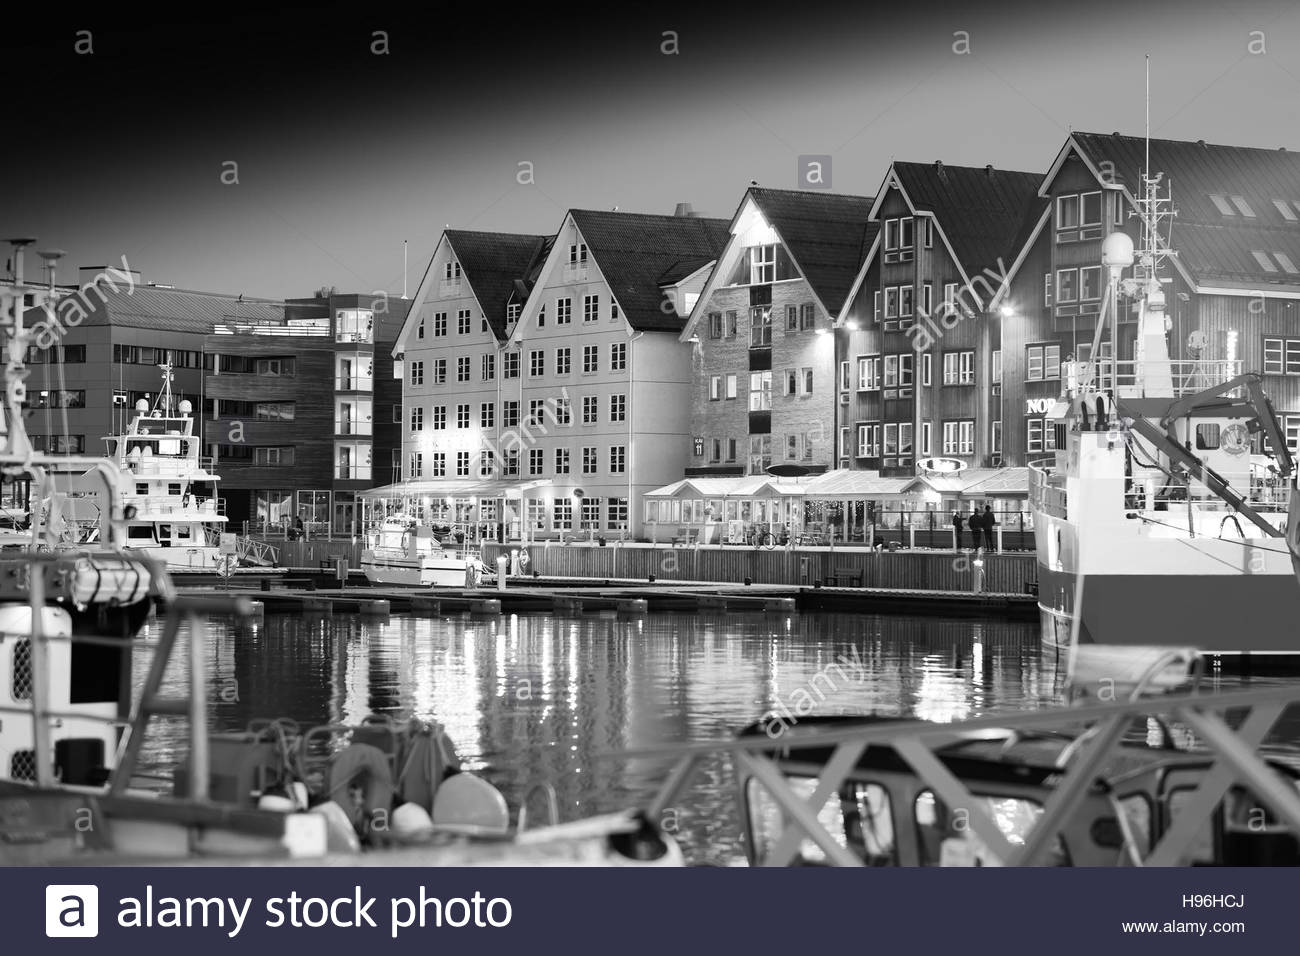 Night Tromso Black And White Postcard Background Hd Stock Photo